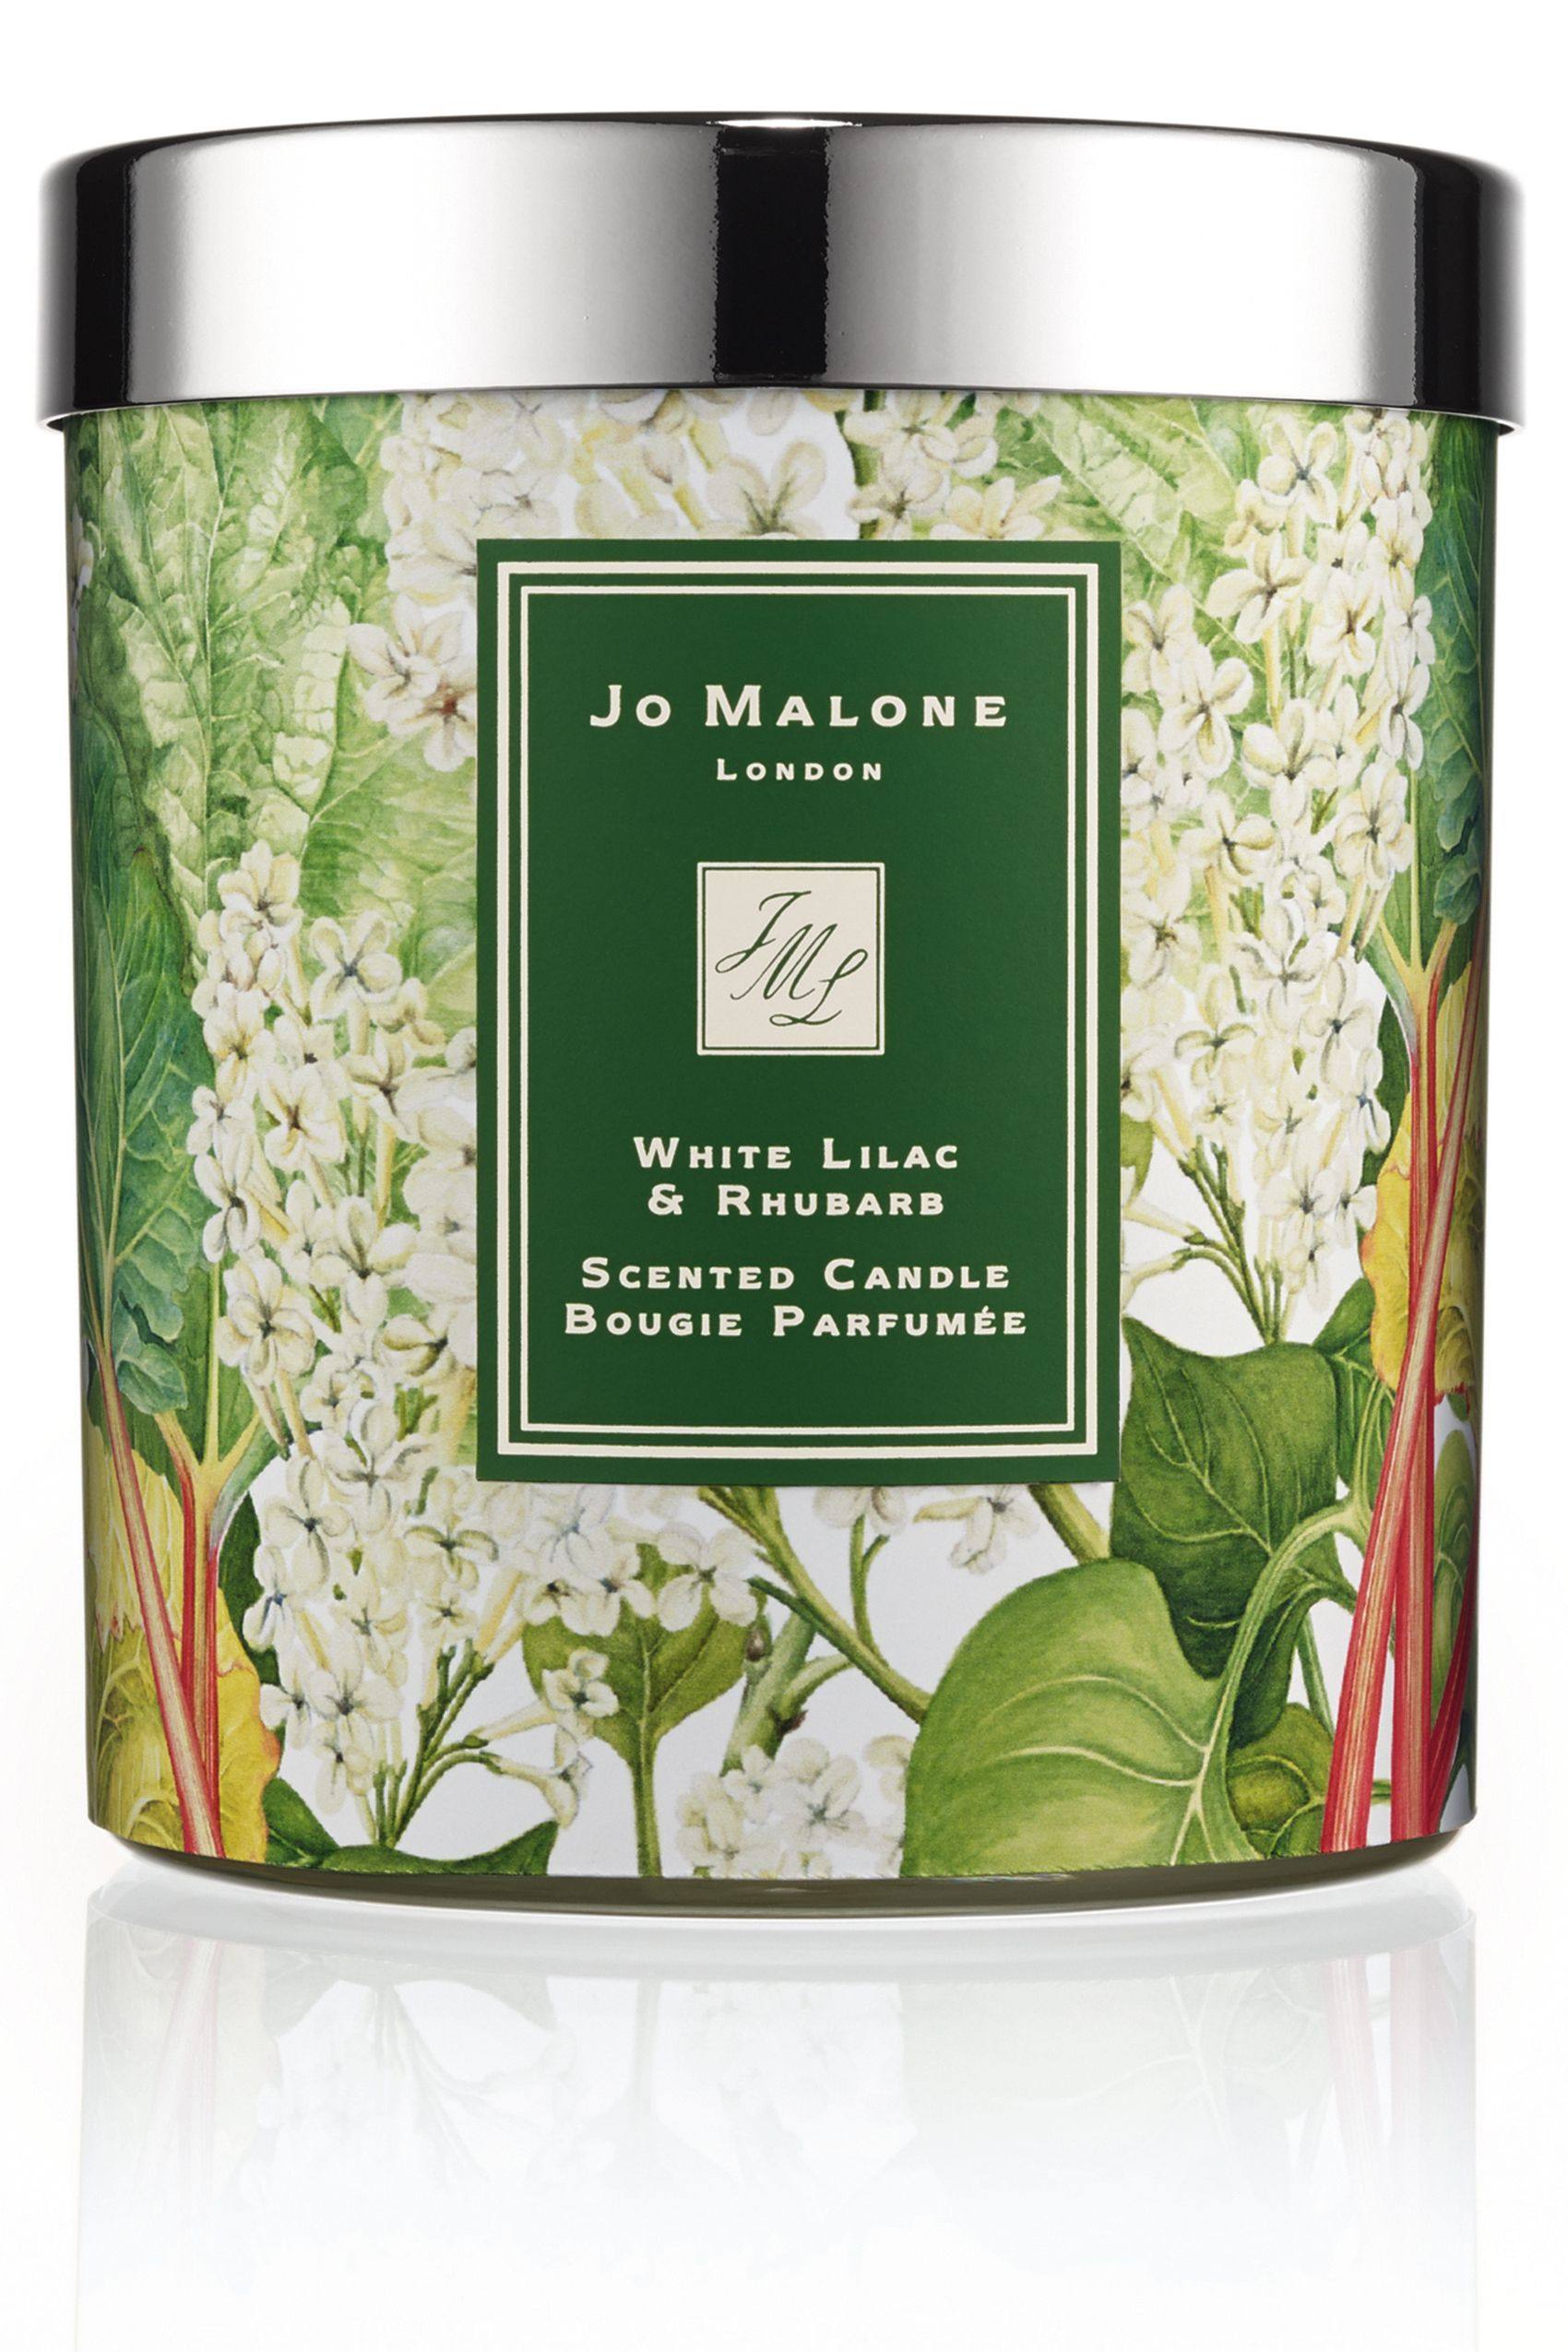 "<strong>Jo Malone</strong> White Lilac & Rhubarb Charity Candle, $70, <a target=""_blank"" href=""http://www.jomalone.com/product/3560/36189/For-the-Home/Home-Candles/White-Lilac-Rhubarb-Charity-Candle"">jomalone.com</a>."